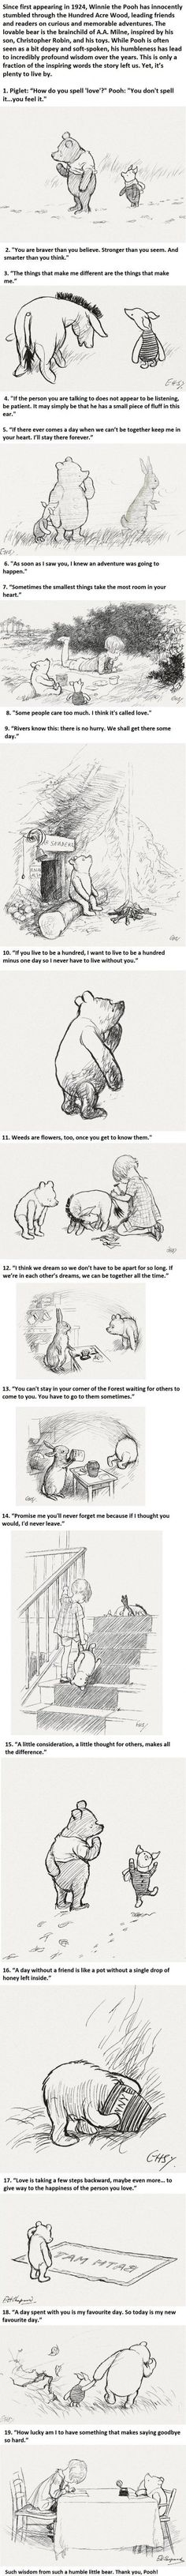 19 Incredibly Wise Truths We Learned From Winnie The Pooh -   Misc